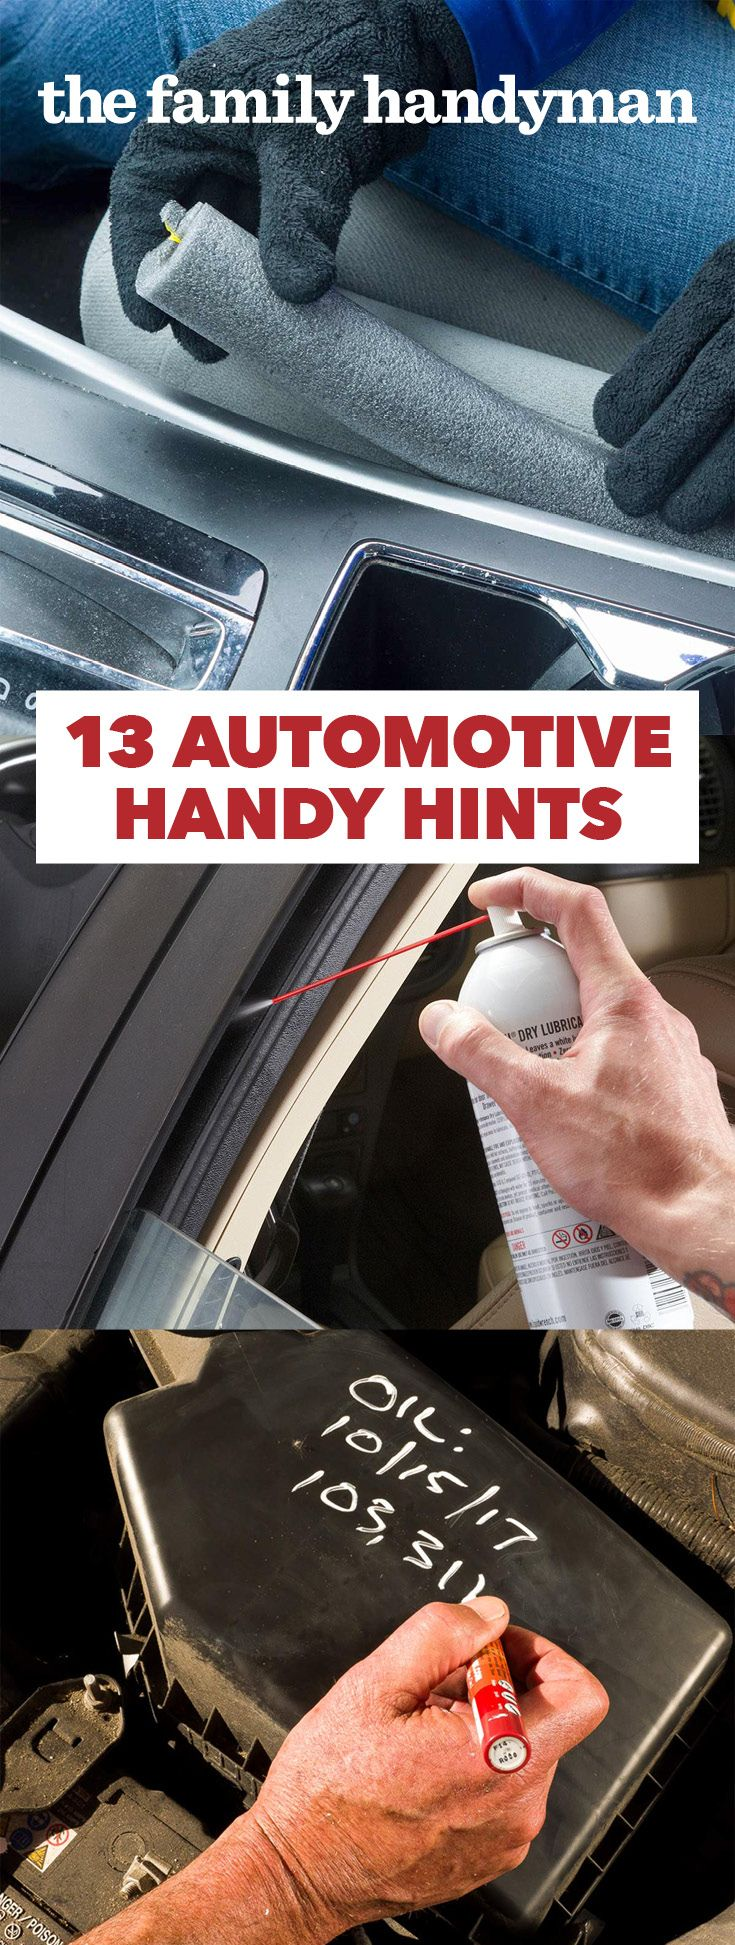 Working on a vehicle can be intimidating for non-mechanic types, but some tasks are very easy to do yourself. The following 13 handy hints will help you complete automotive maintenance and small fixes with ease.